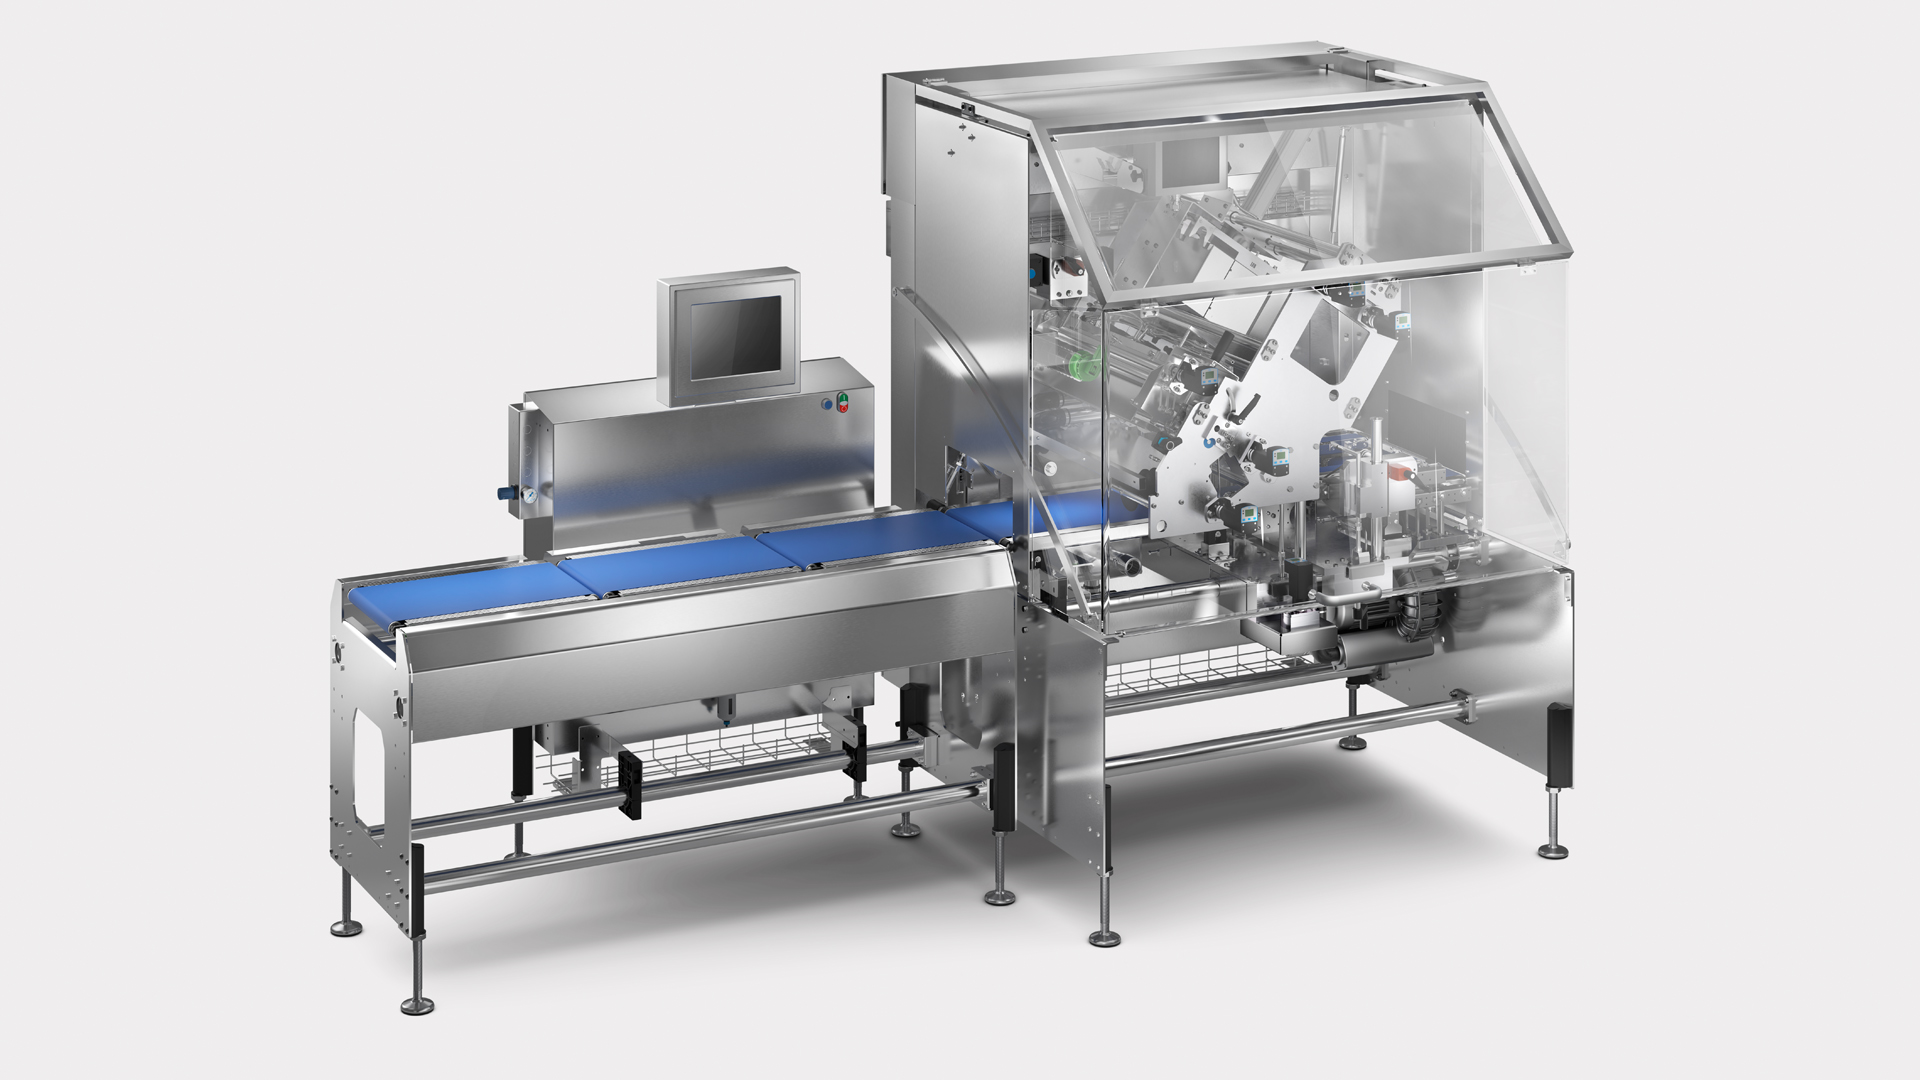 Weigh price labeling system GLM-Ievo Cleancut